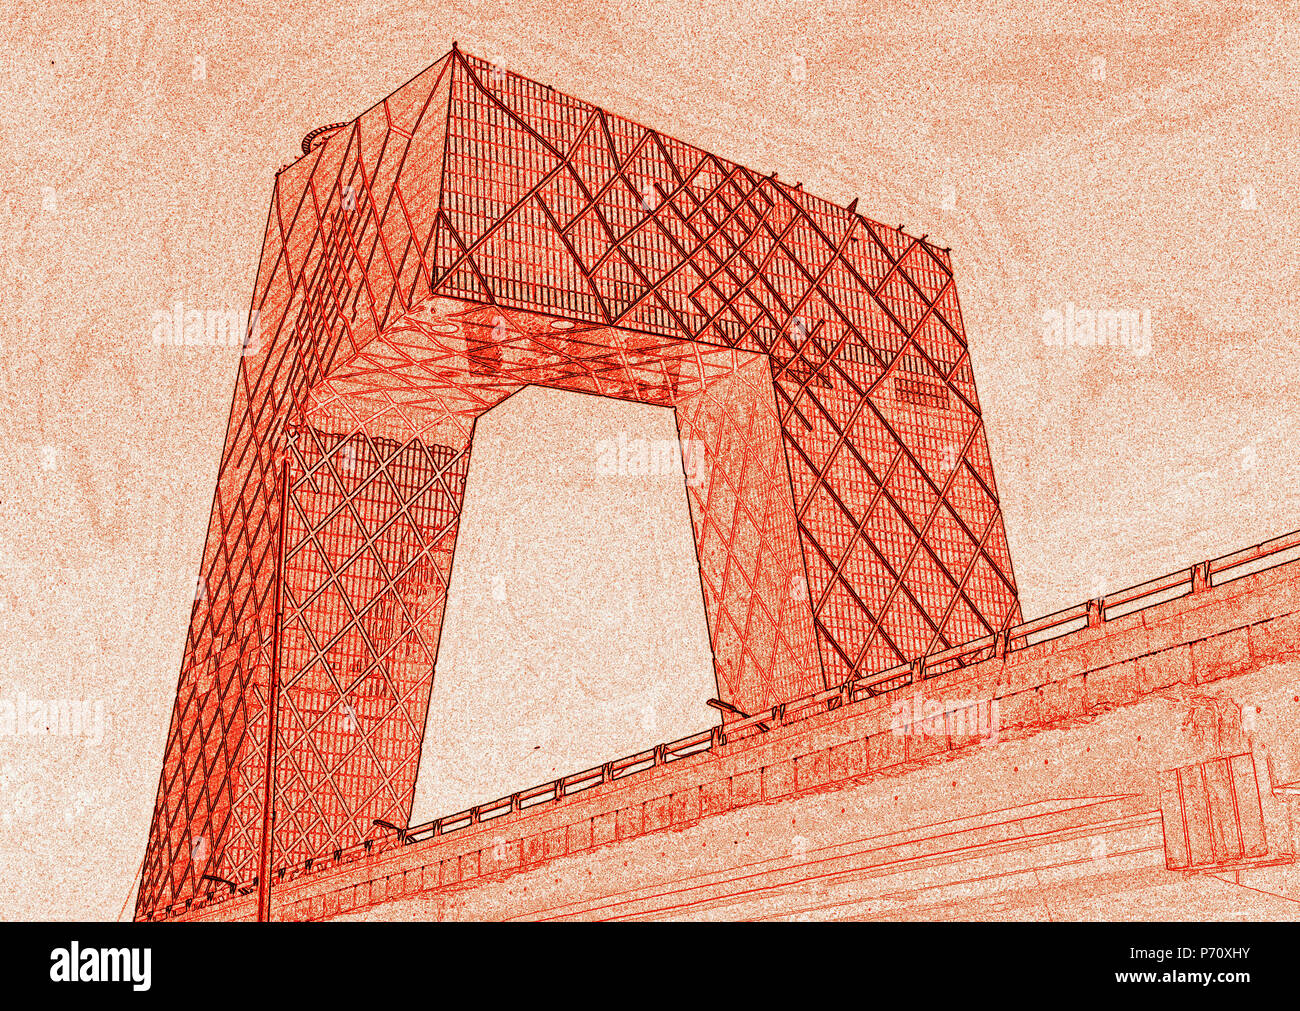 CCTV ( China Central Television) headquarters tower, by architects Rem Koolhaas and Ole Scheeren of OMA, East Third Ring Road, Beijing - Stock Image